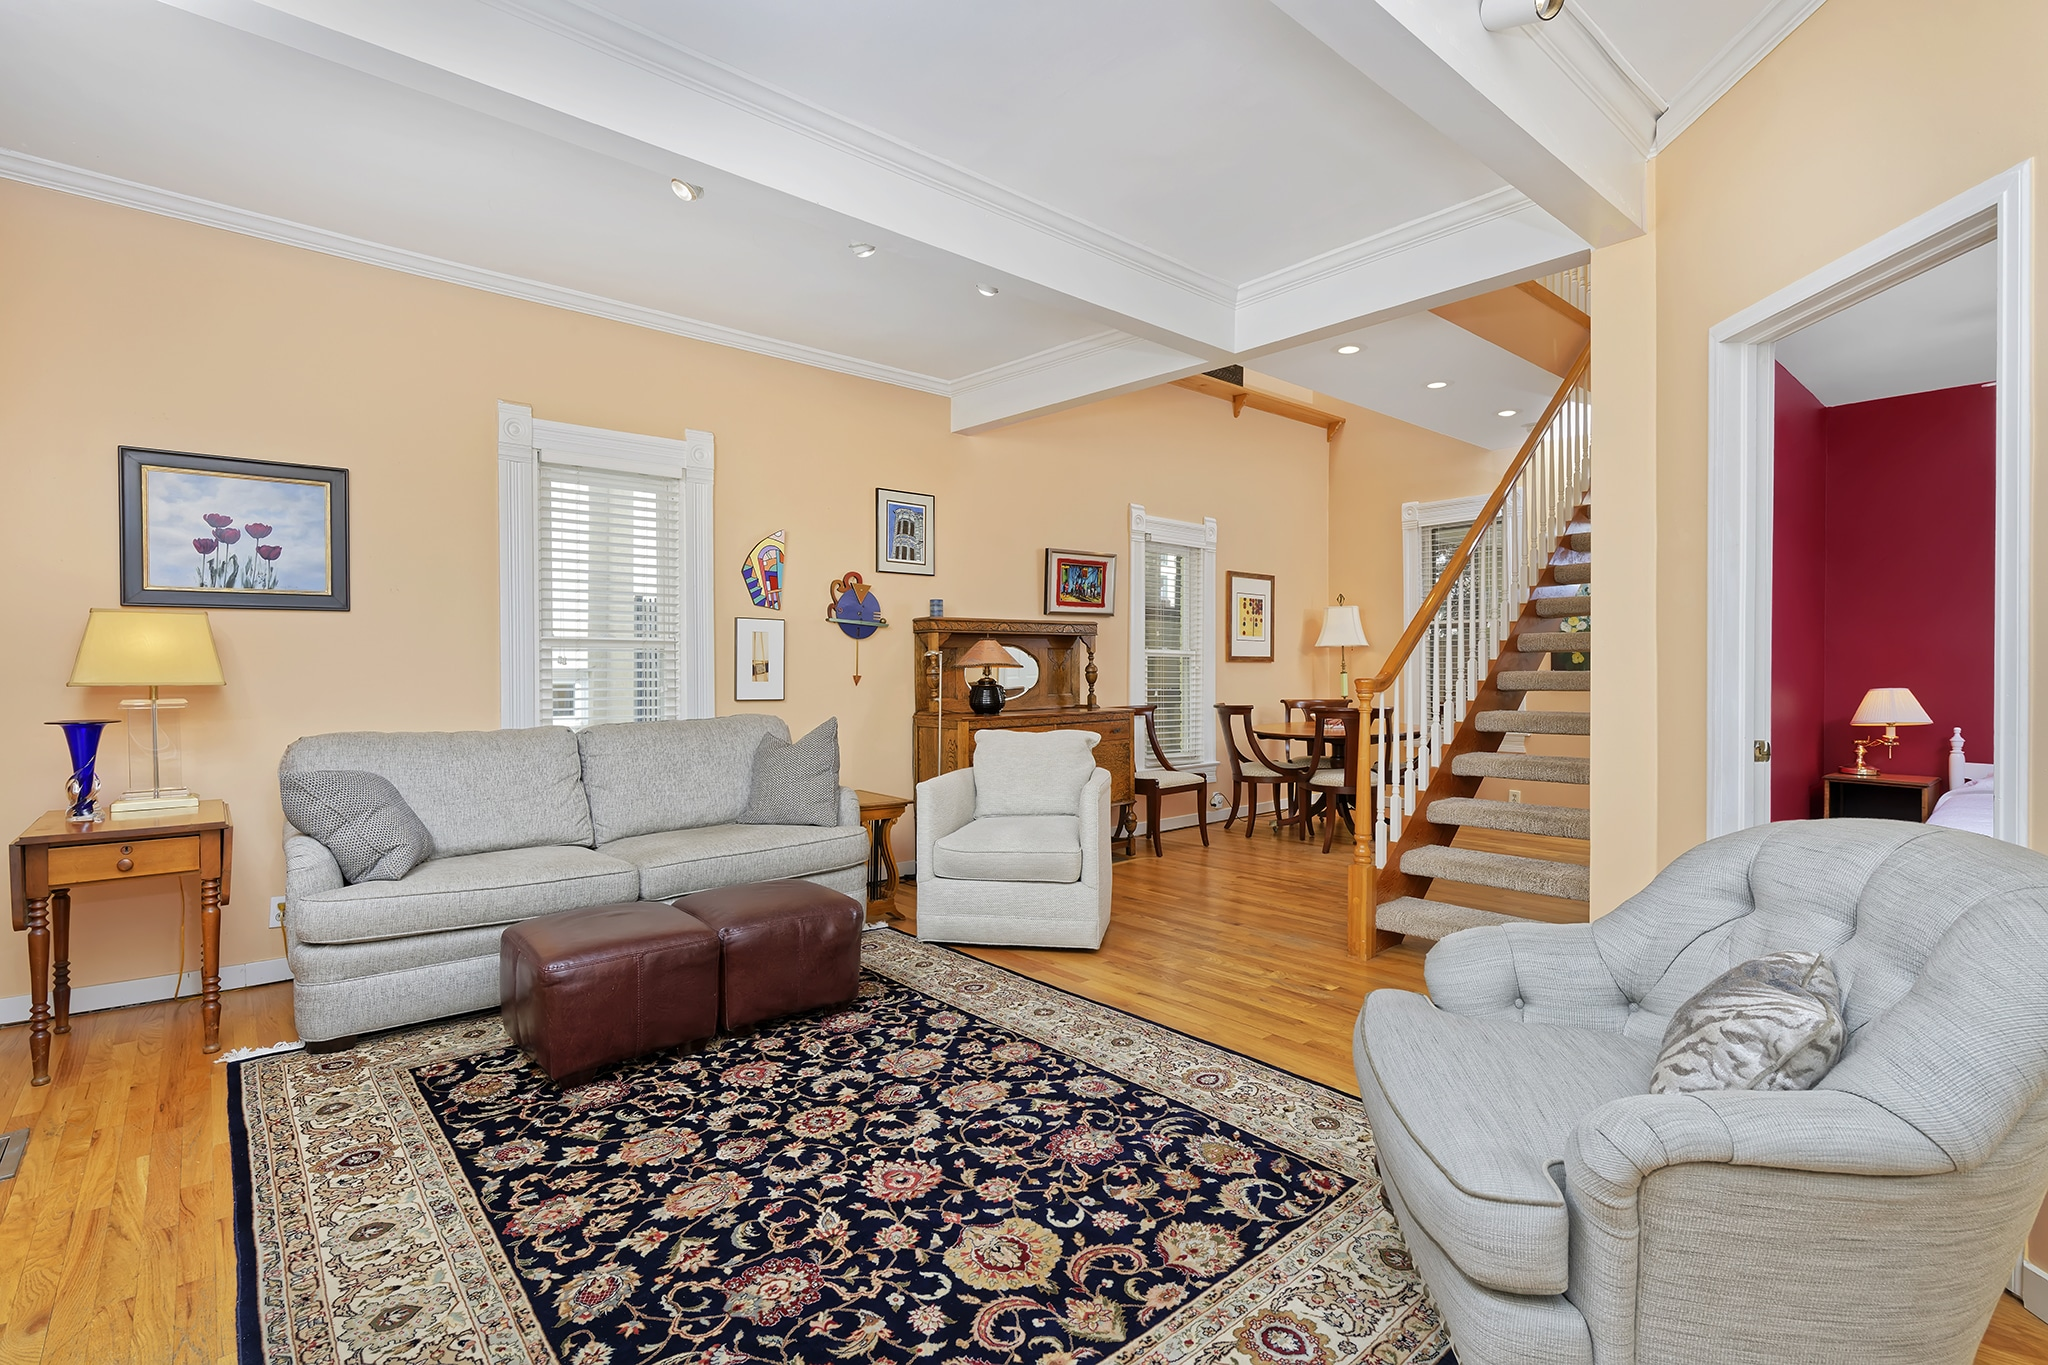 Main Living room with 9 foot coffered ceilings, crown molding, oak floors, charming architecture